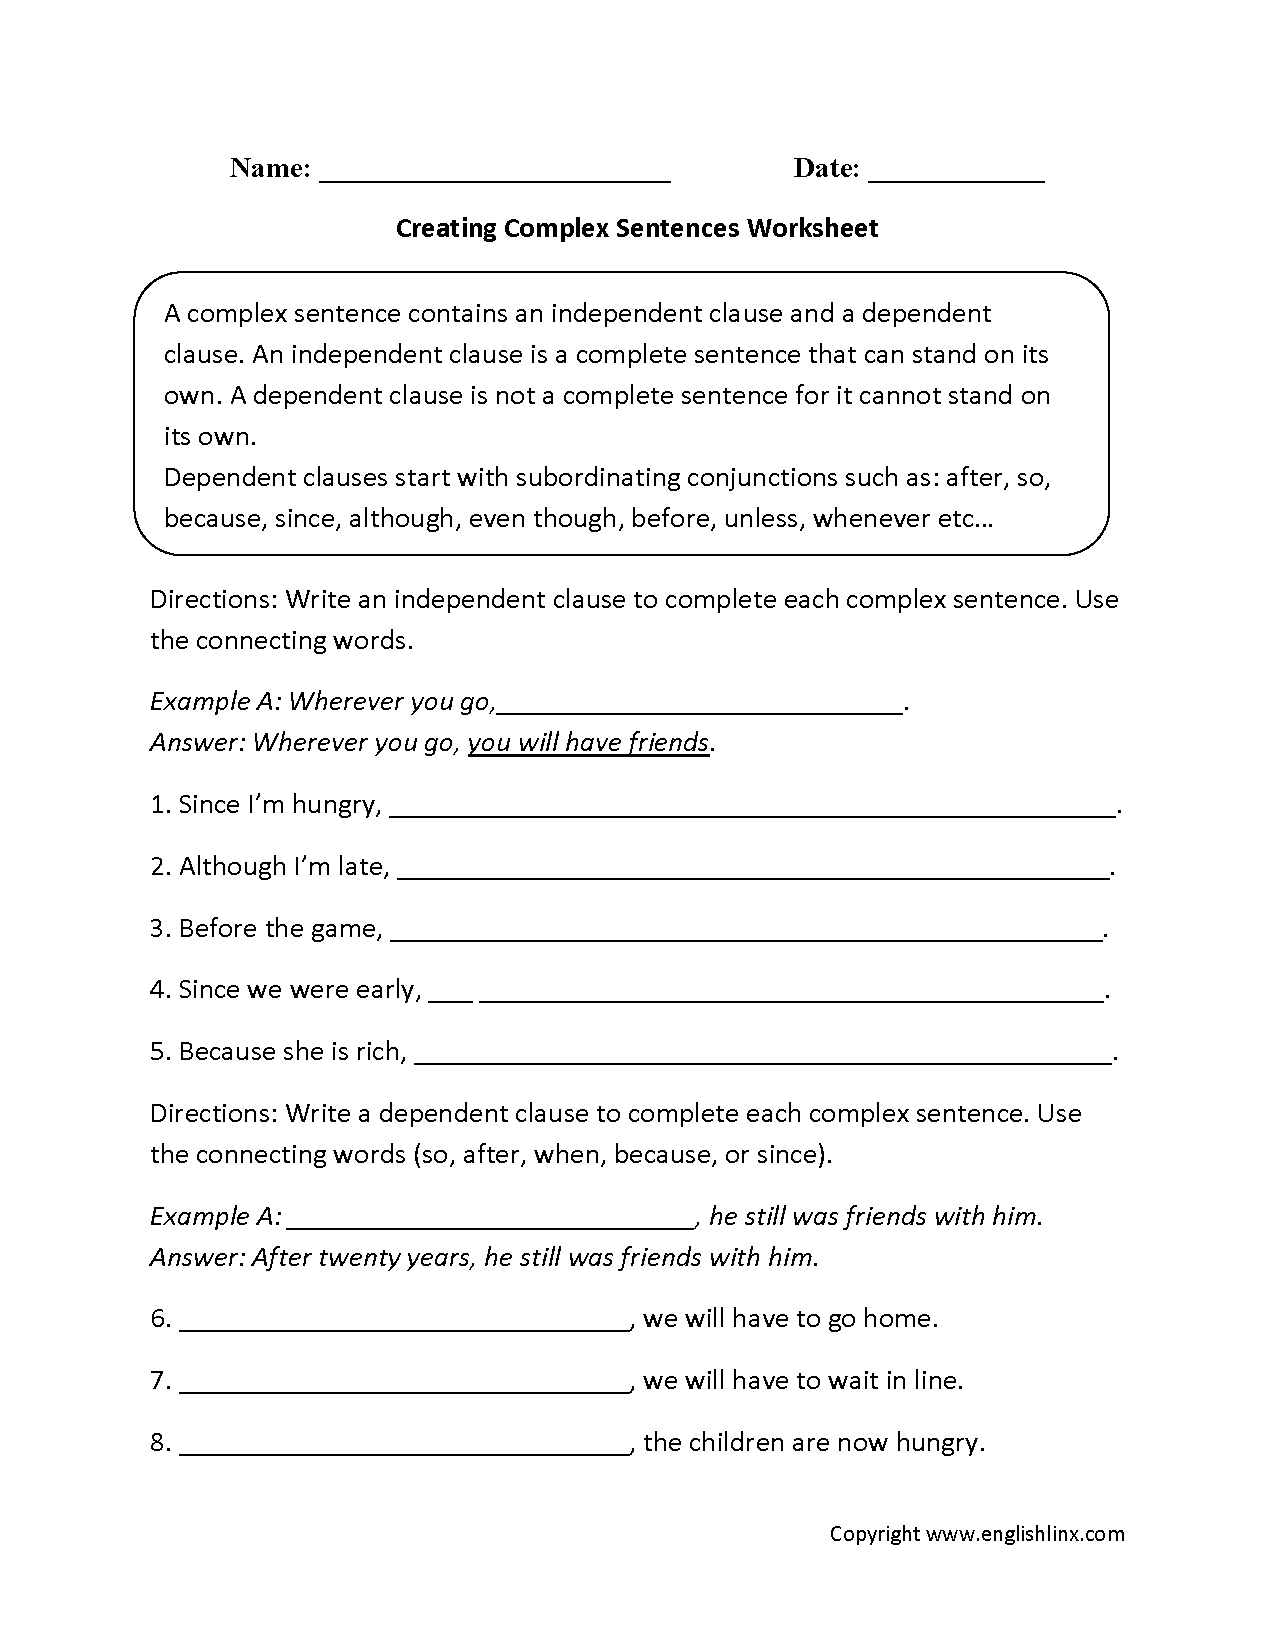 Sentences Worksheets | Complex Sentences Worksheets - Free Printable Worksheets On Simple Compound And Complex Sentences